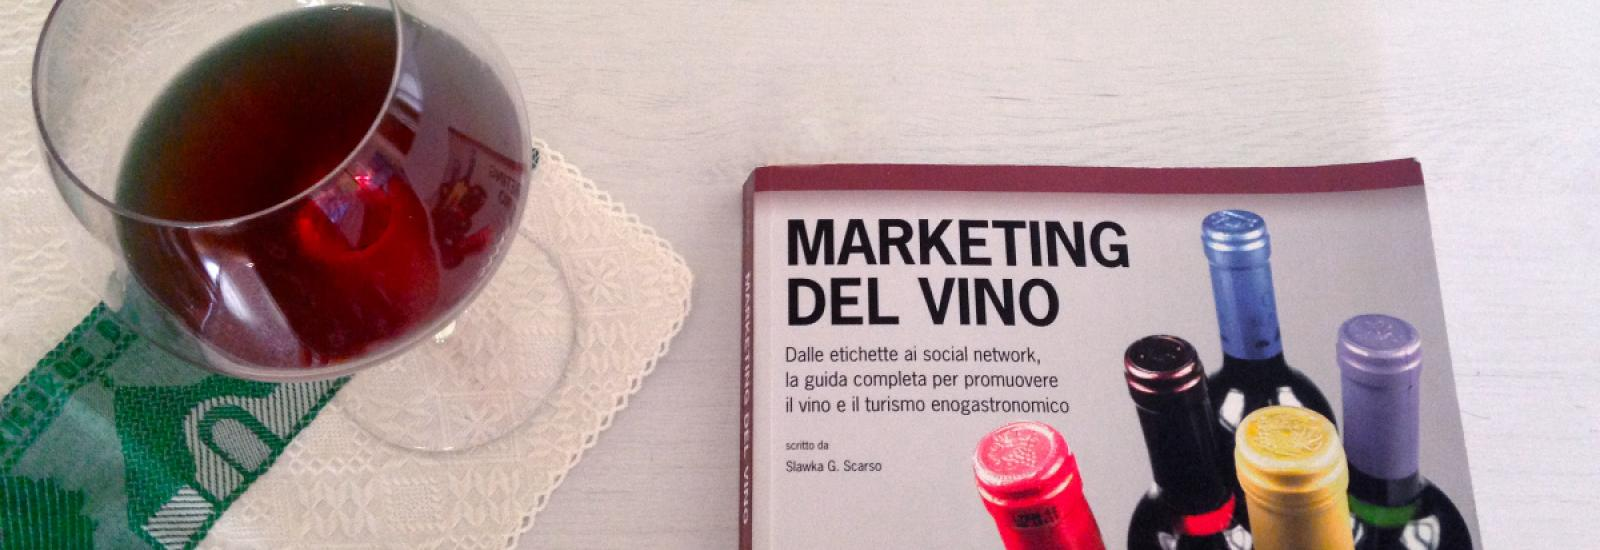 Marketing del vino di Slawka G. Scarso